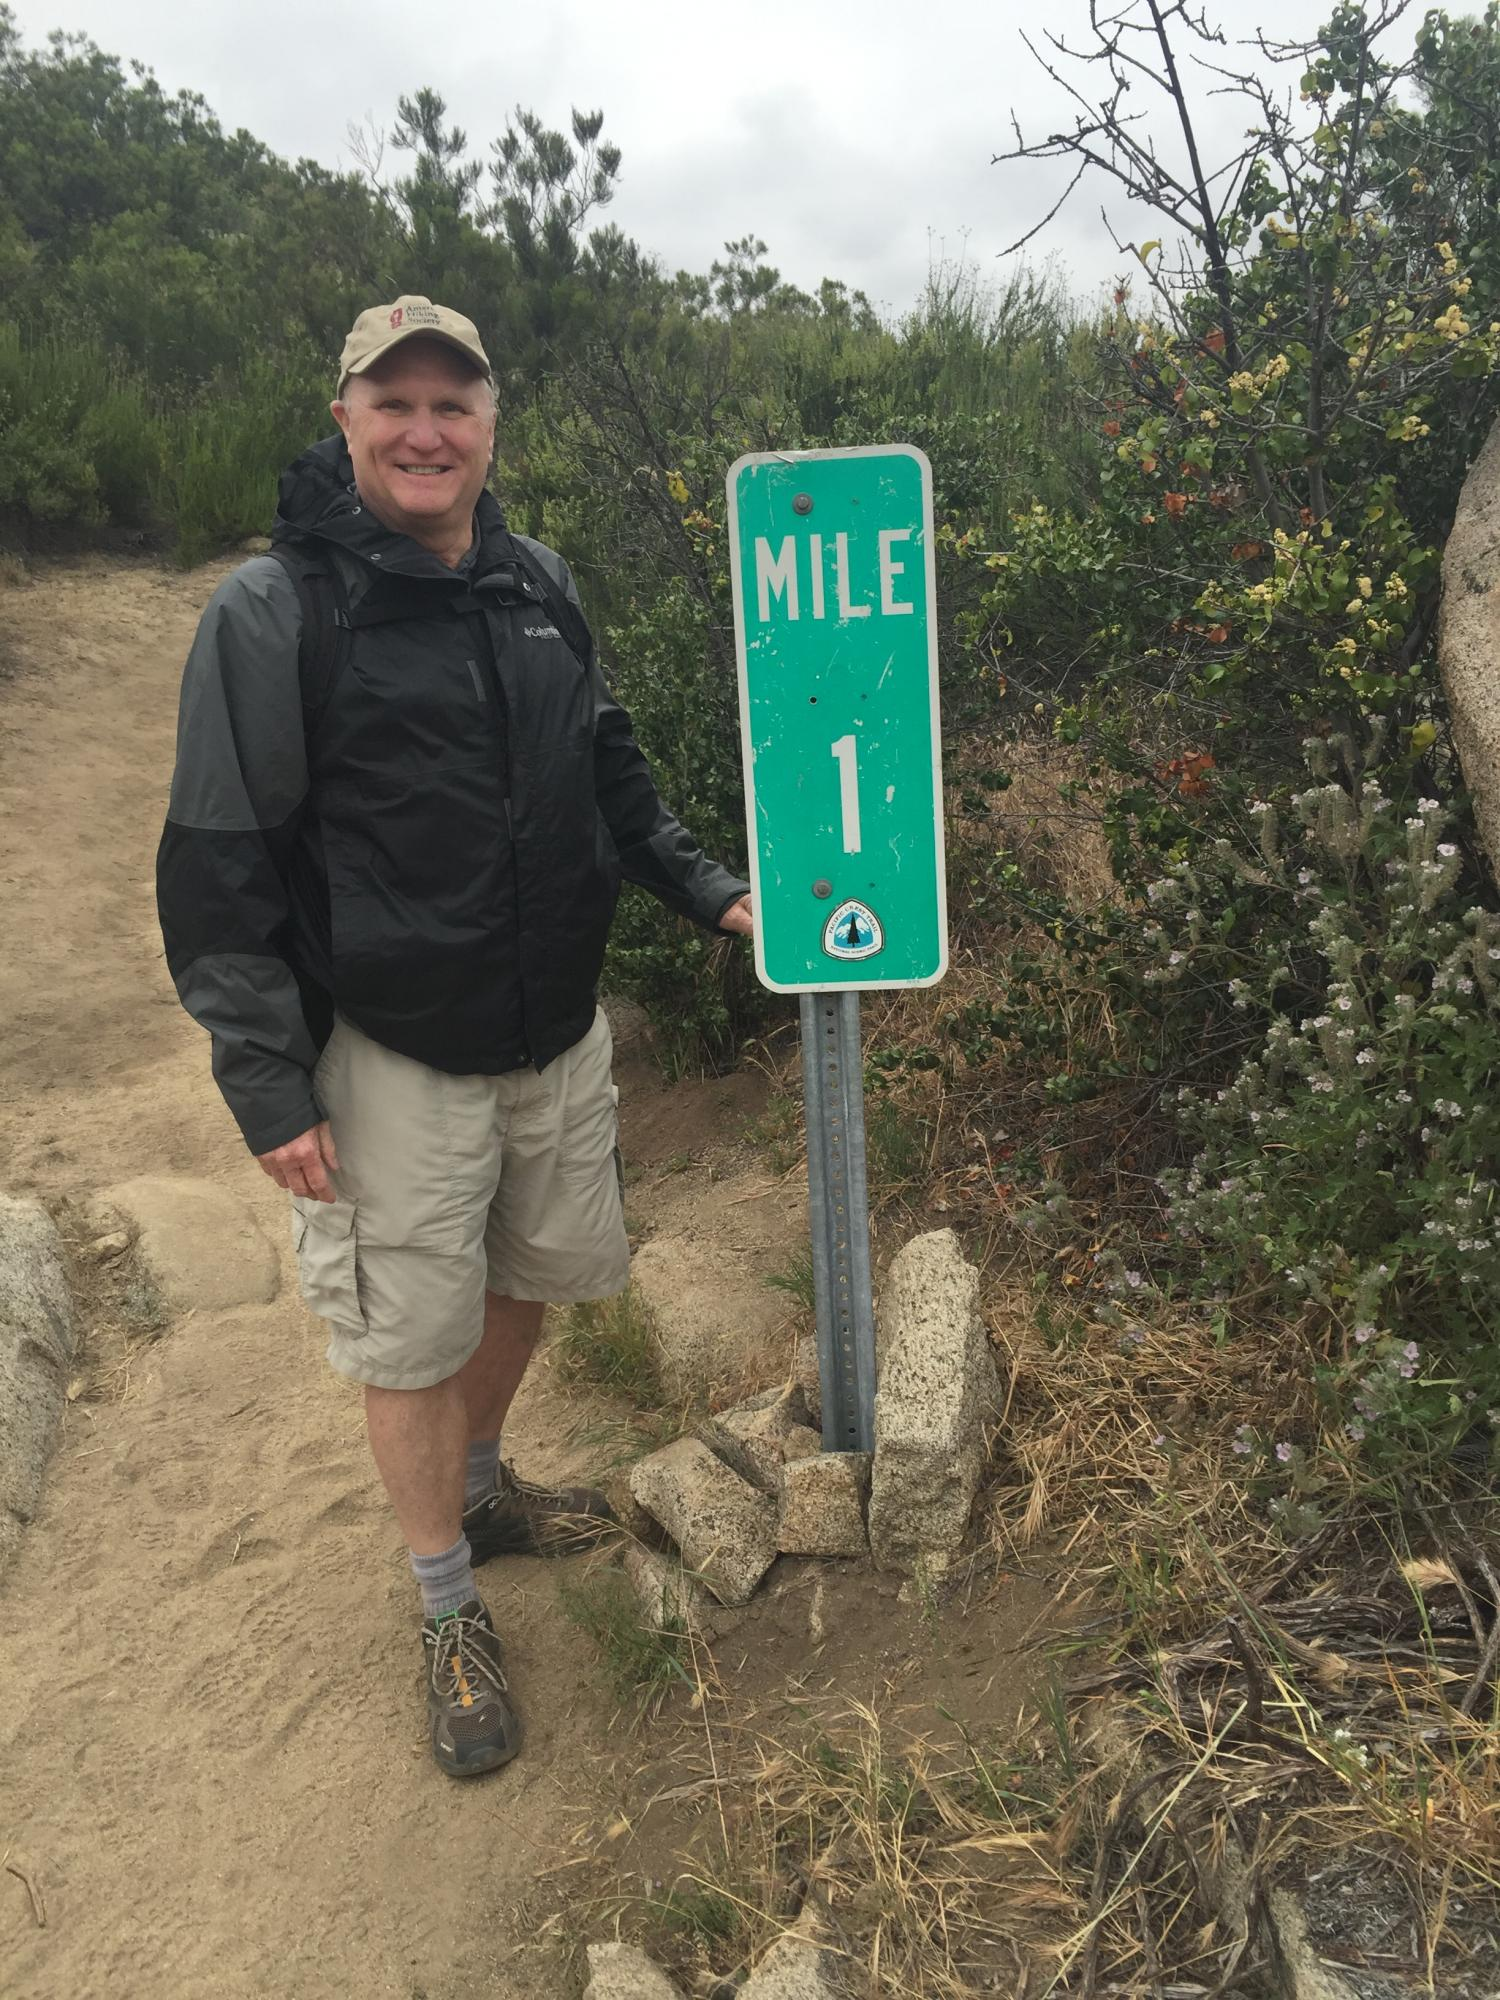 Taken May 2016 on the Mexican border at mile 1 of the Pacific Crest Trail which goes from Mexico to Canada